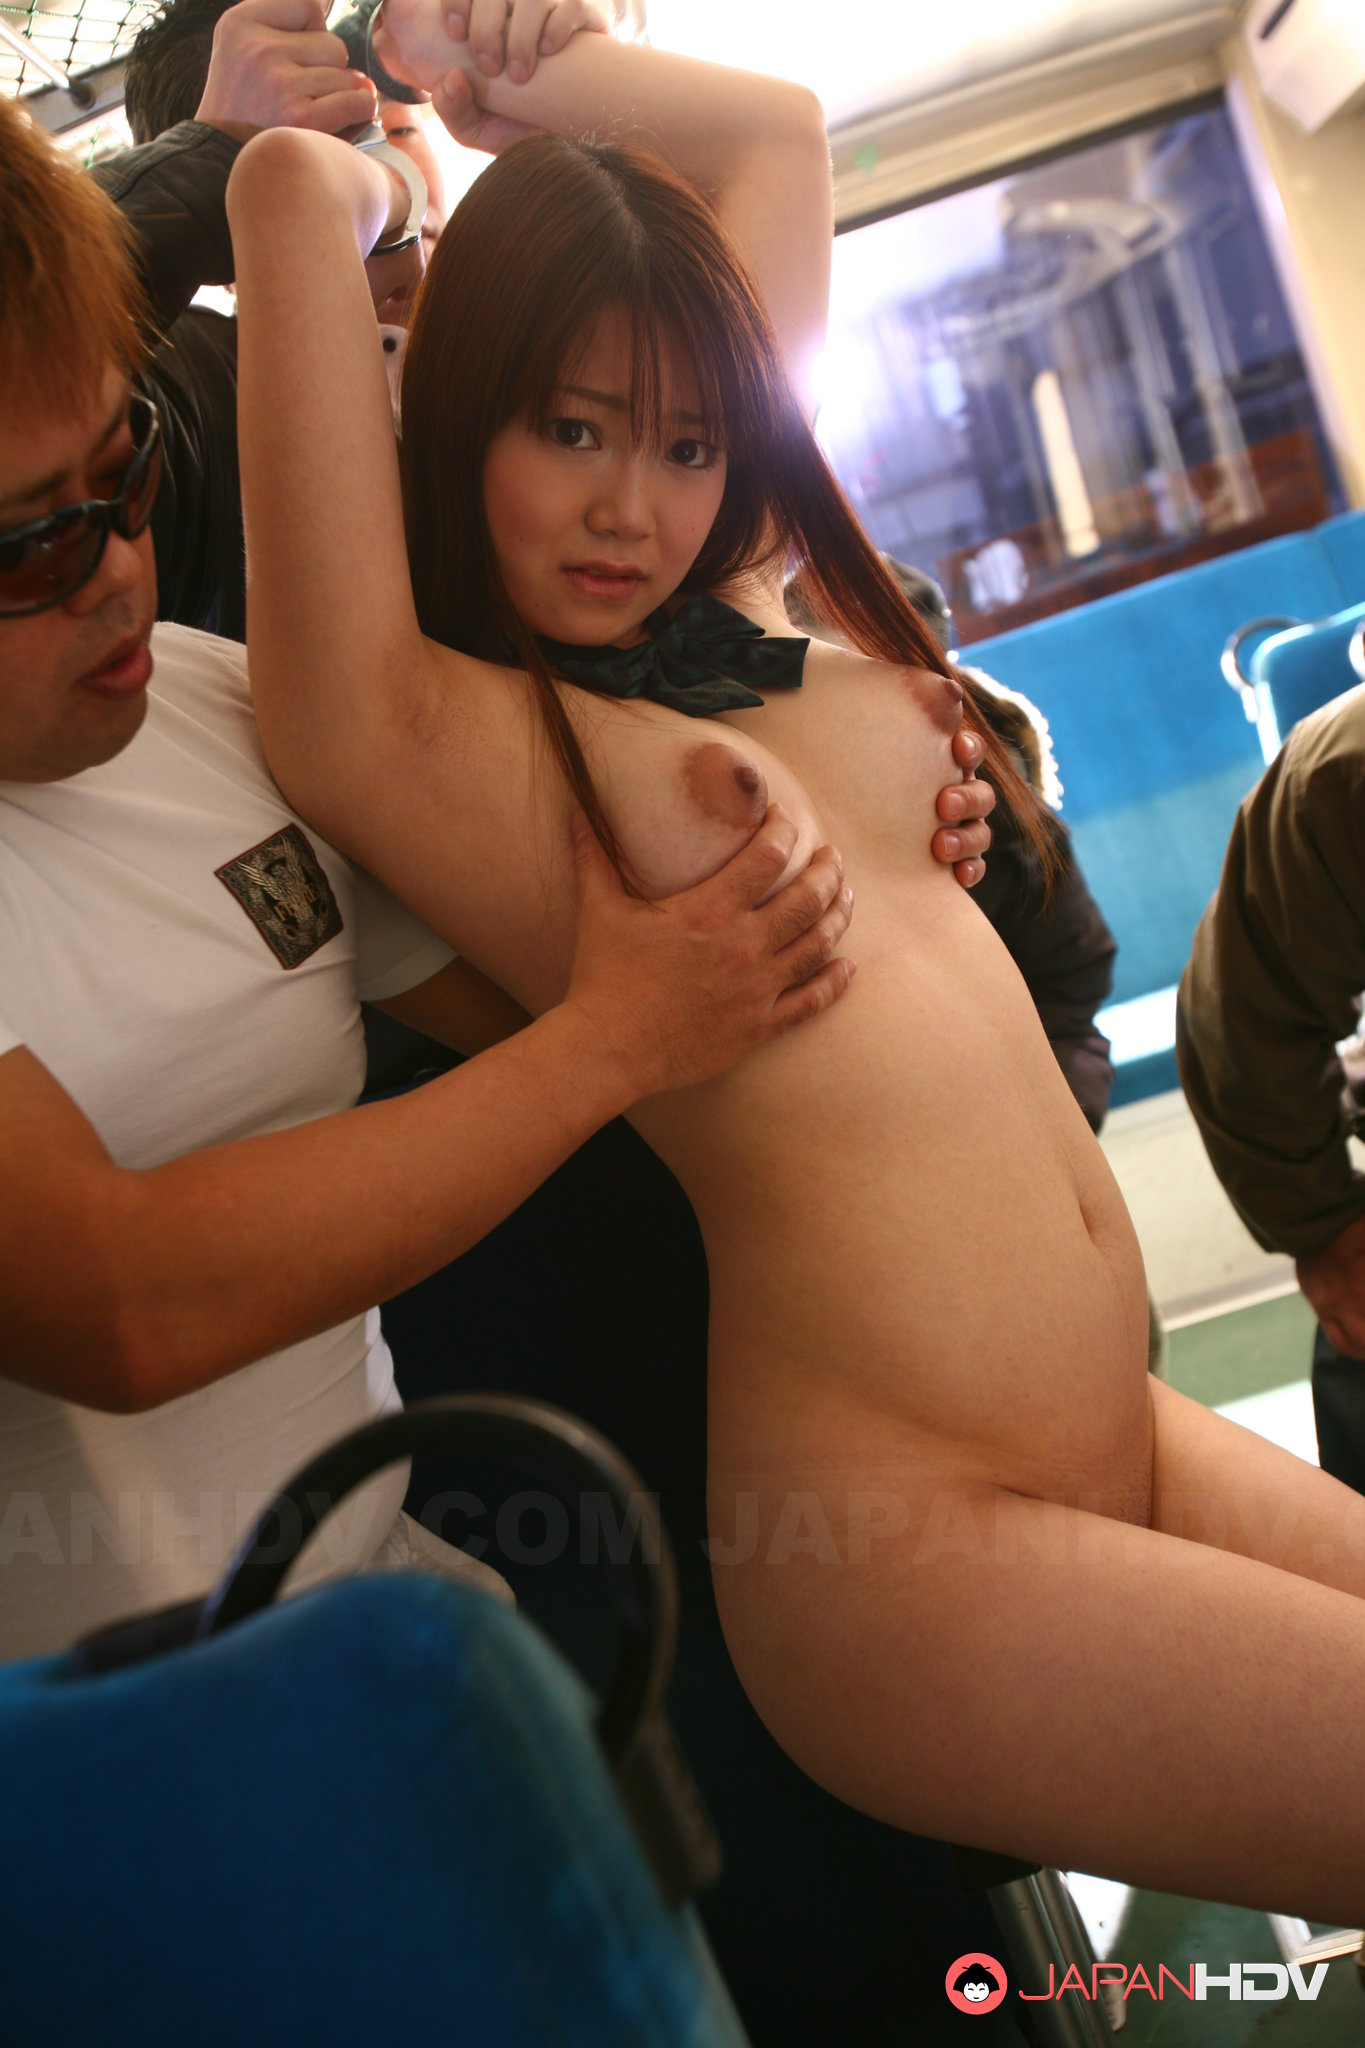 sex in public bus in japan